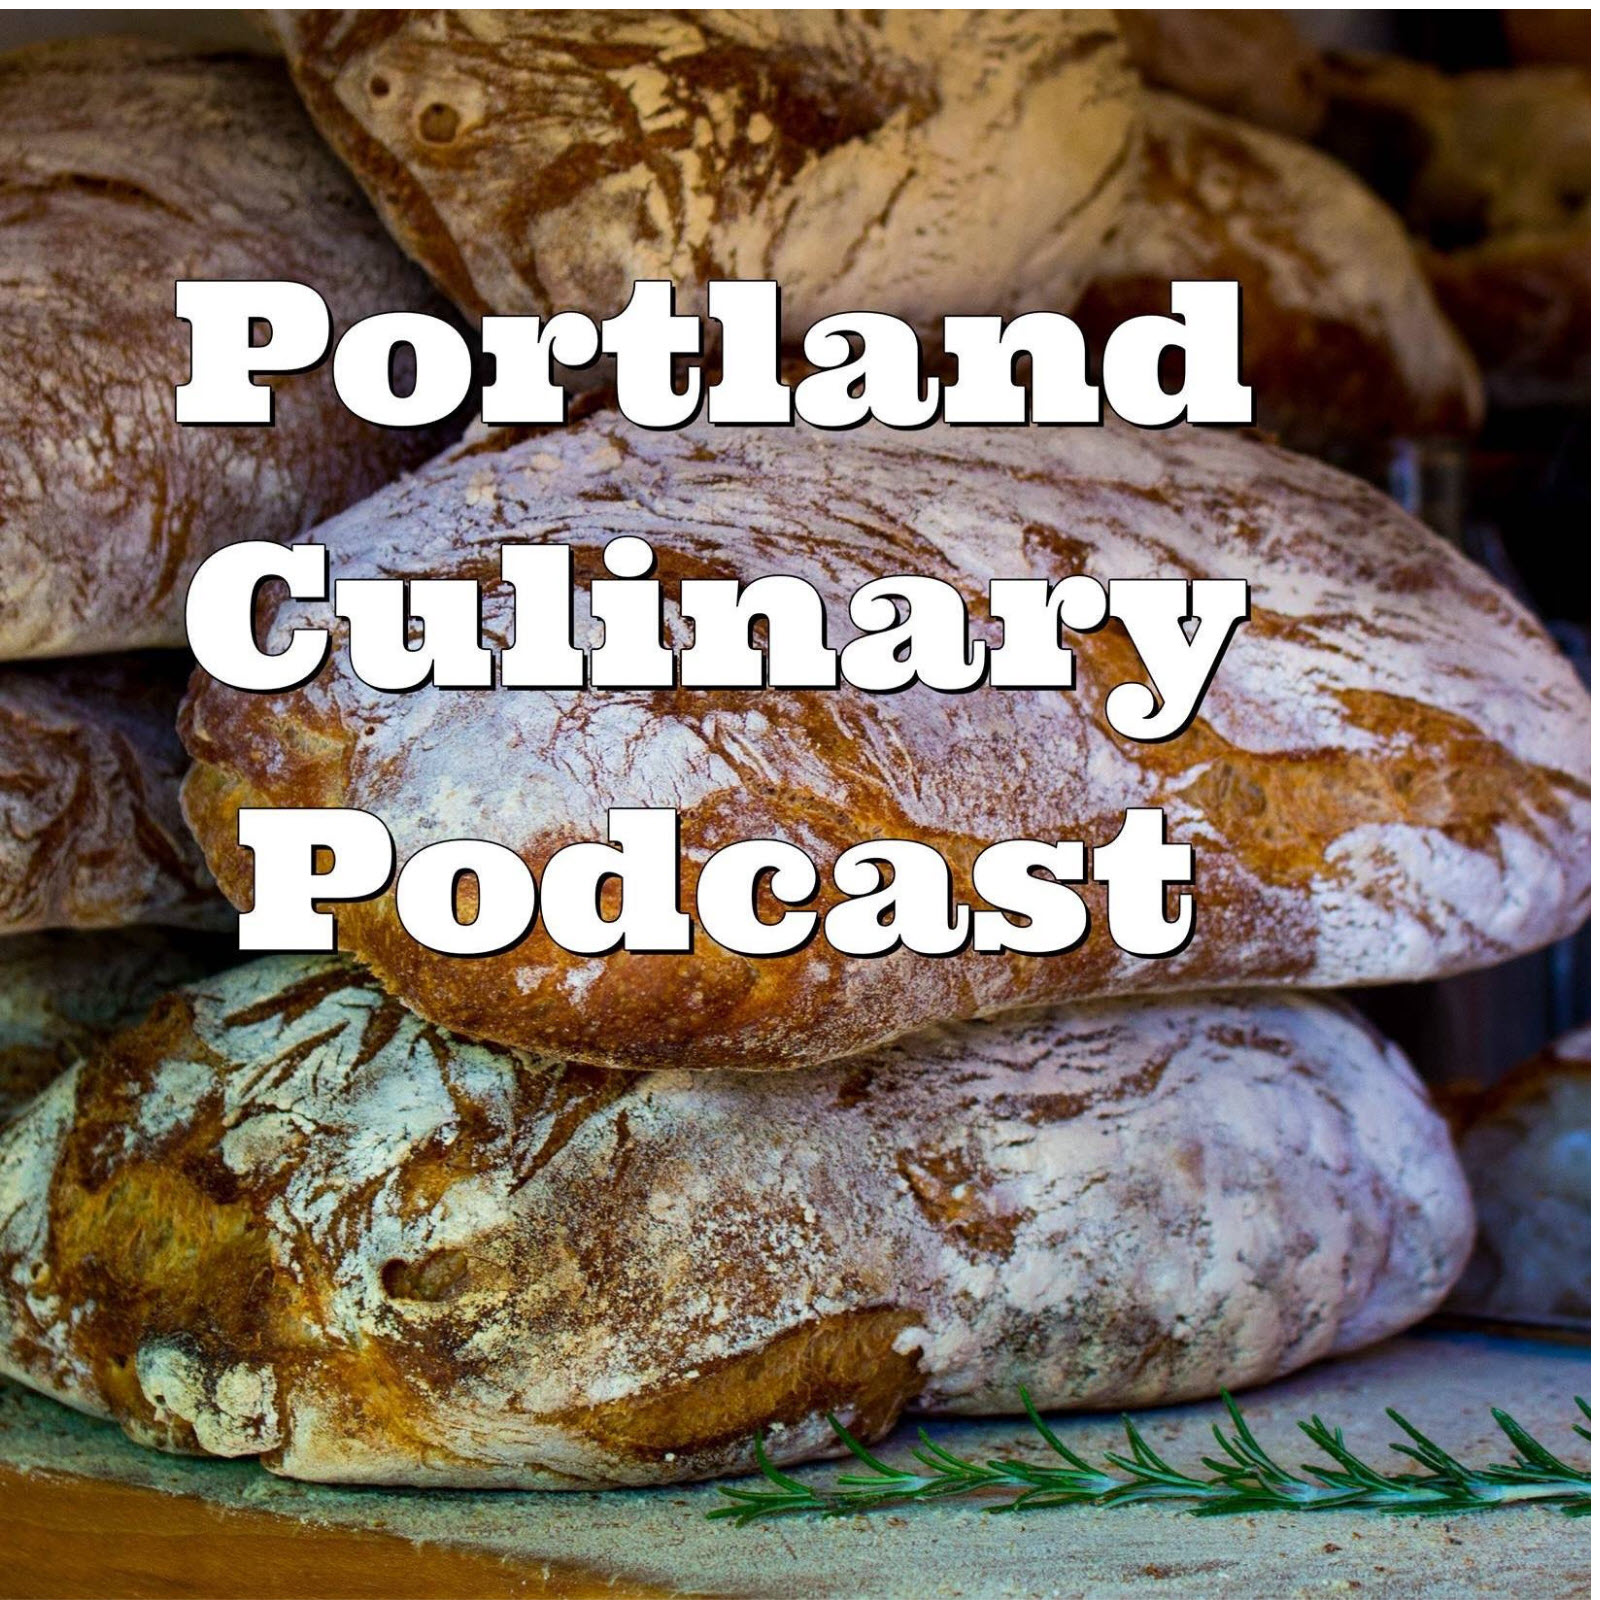 The Portland Culinary Podcast show art